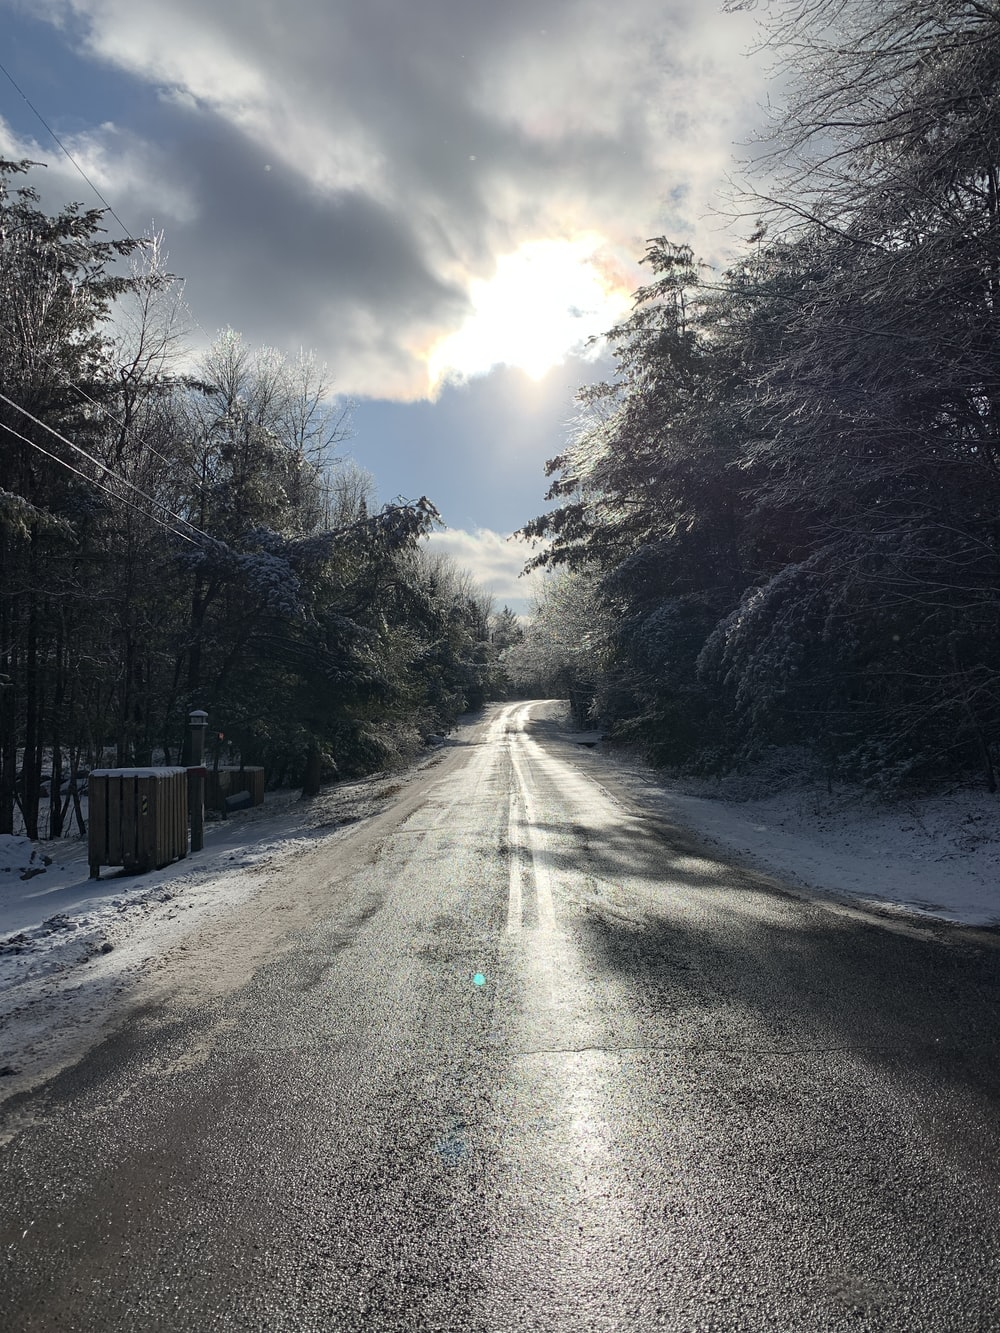 gray road between trees during daytime